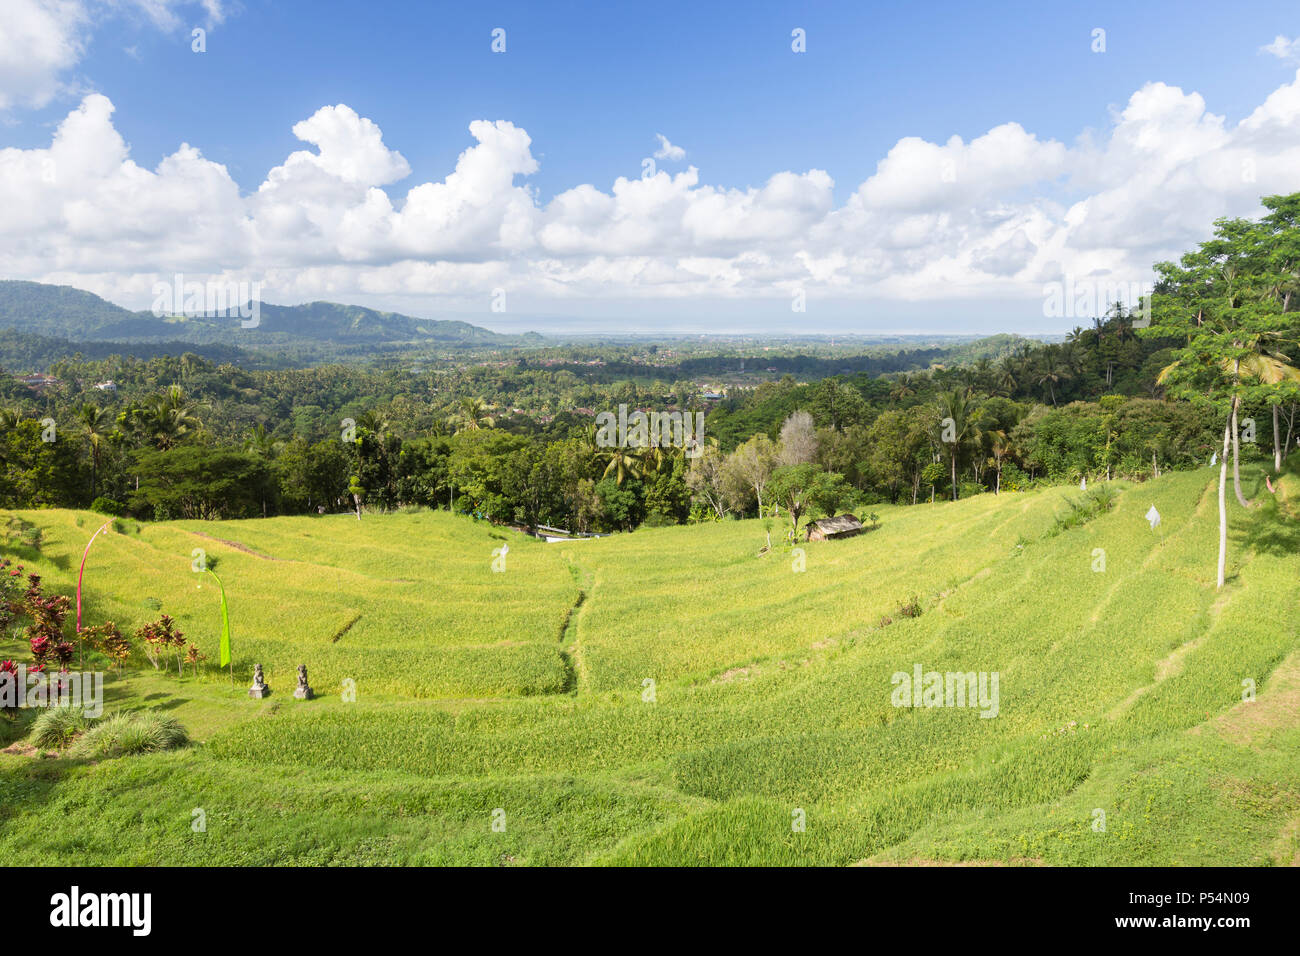 Sidemen, crescent of rice terraces on the road to Semarapura, Bali, Indonesia - Stock Image